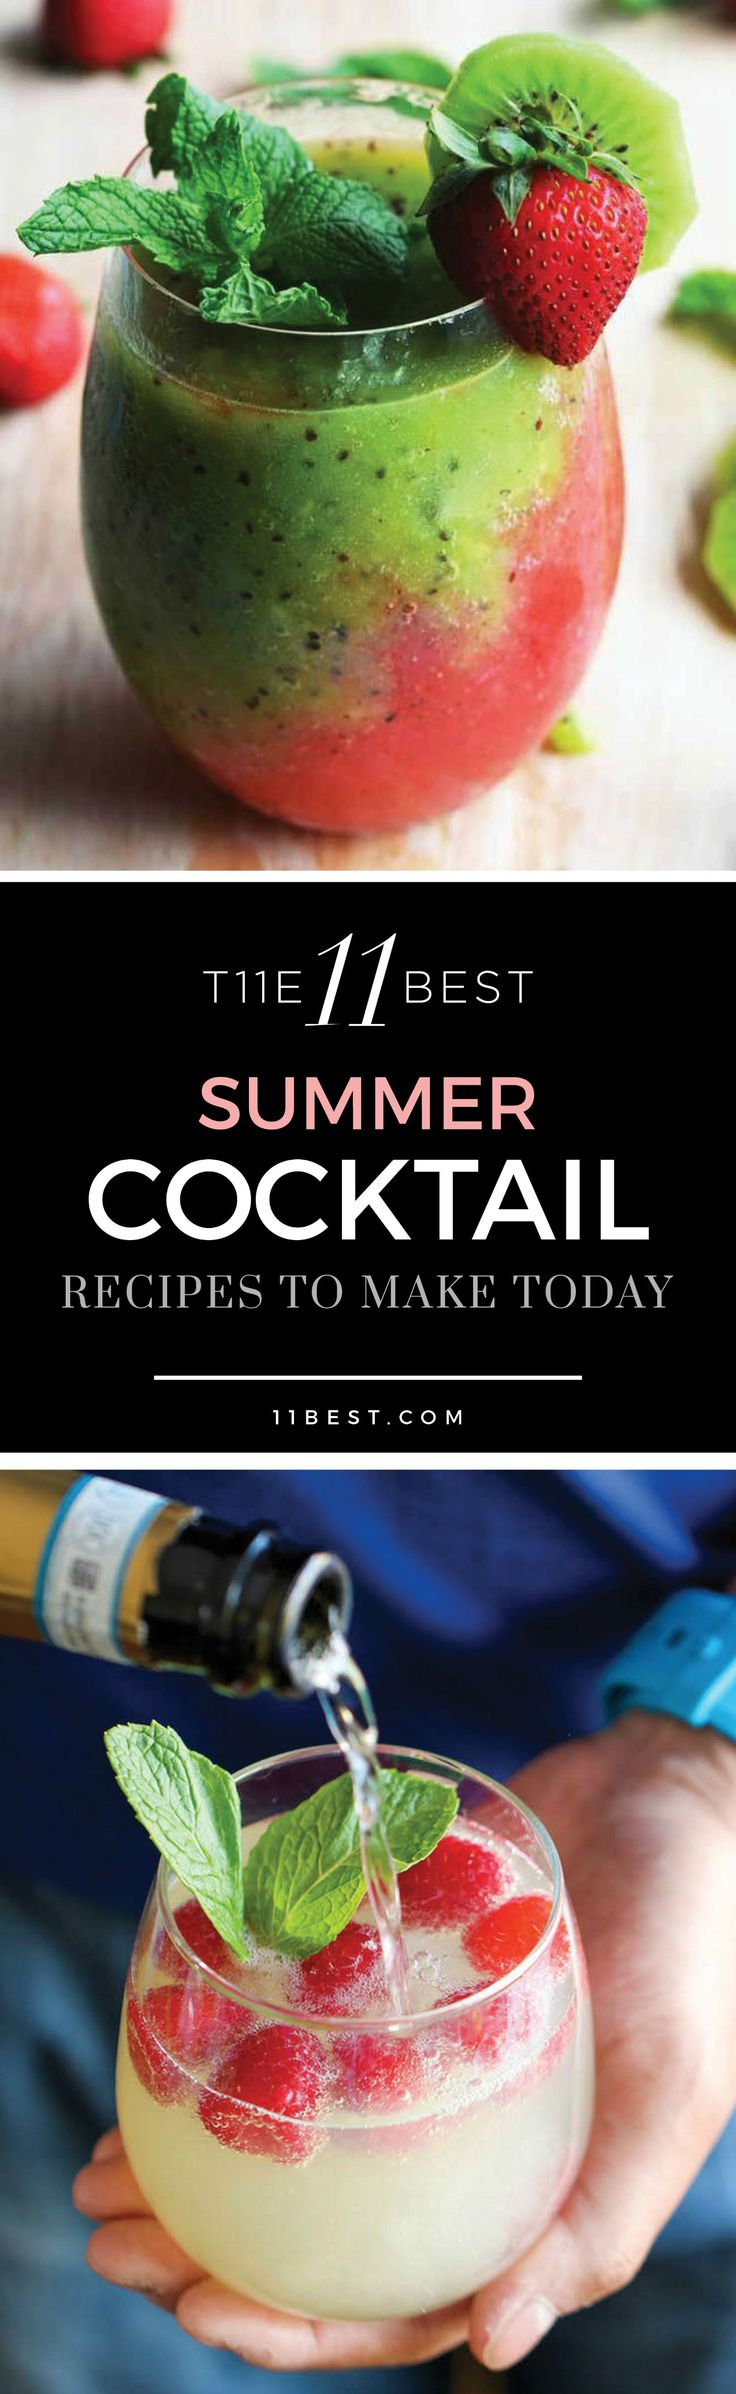 The 11 Best Summer Cocktails. Cocktail recipes and ideas nobody can resist!